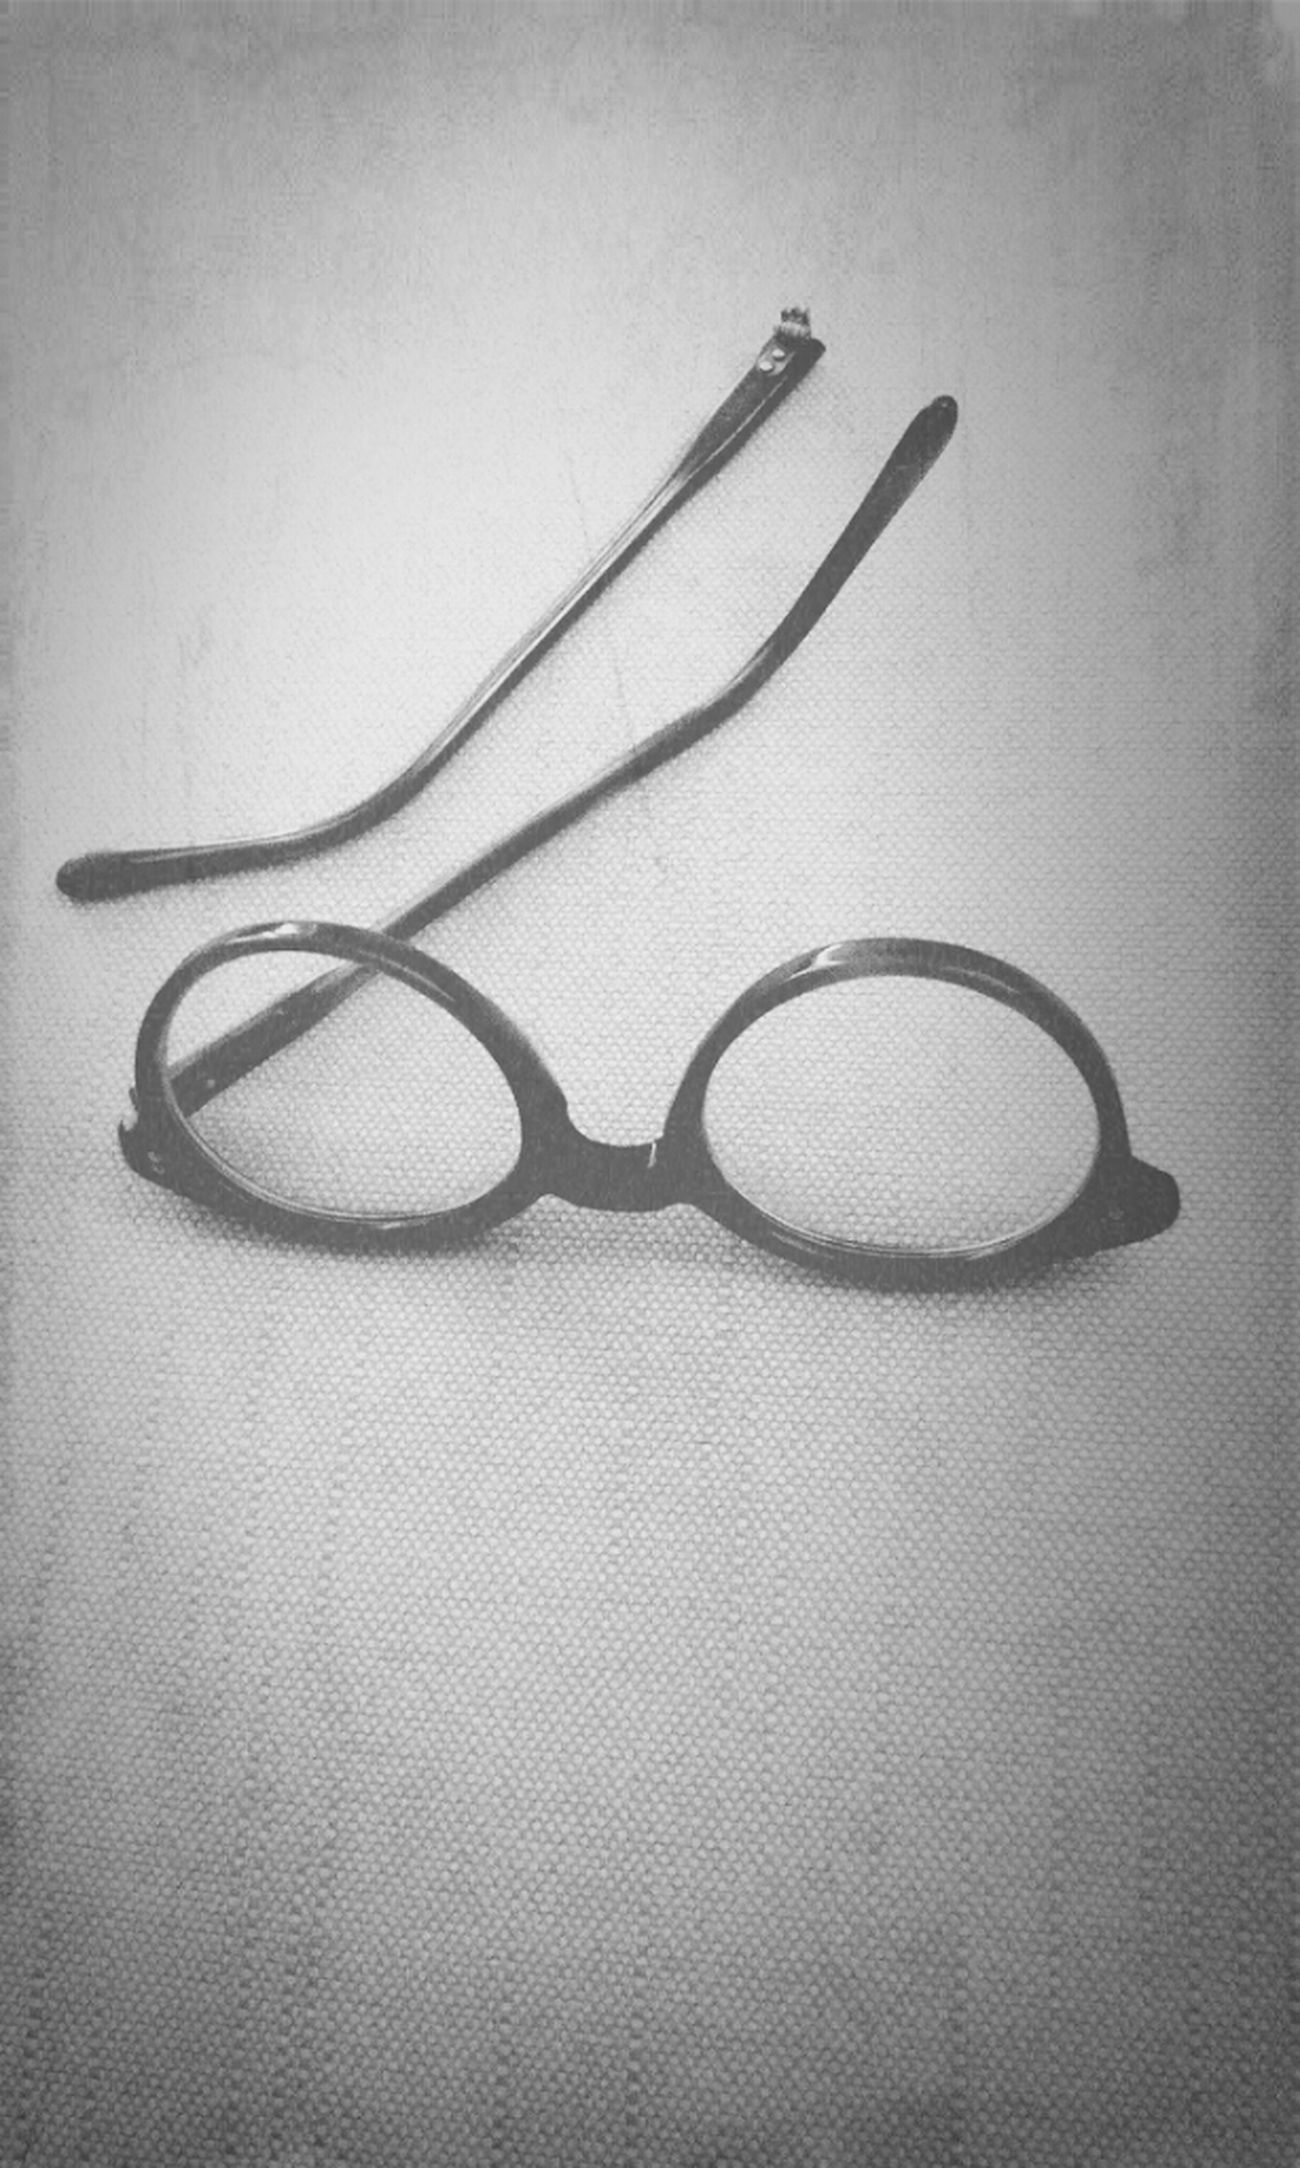 Infinite Sadness Death Funeral Broken Glasses. But one day, every sad story will be happy